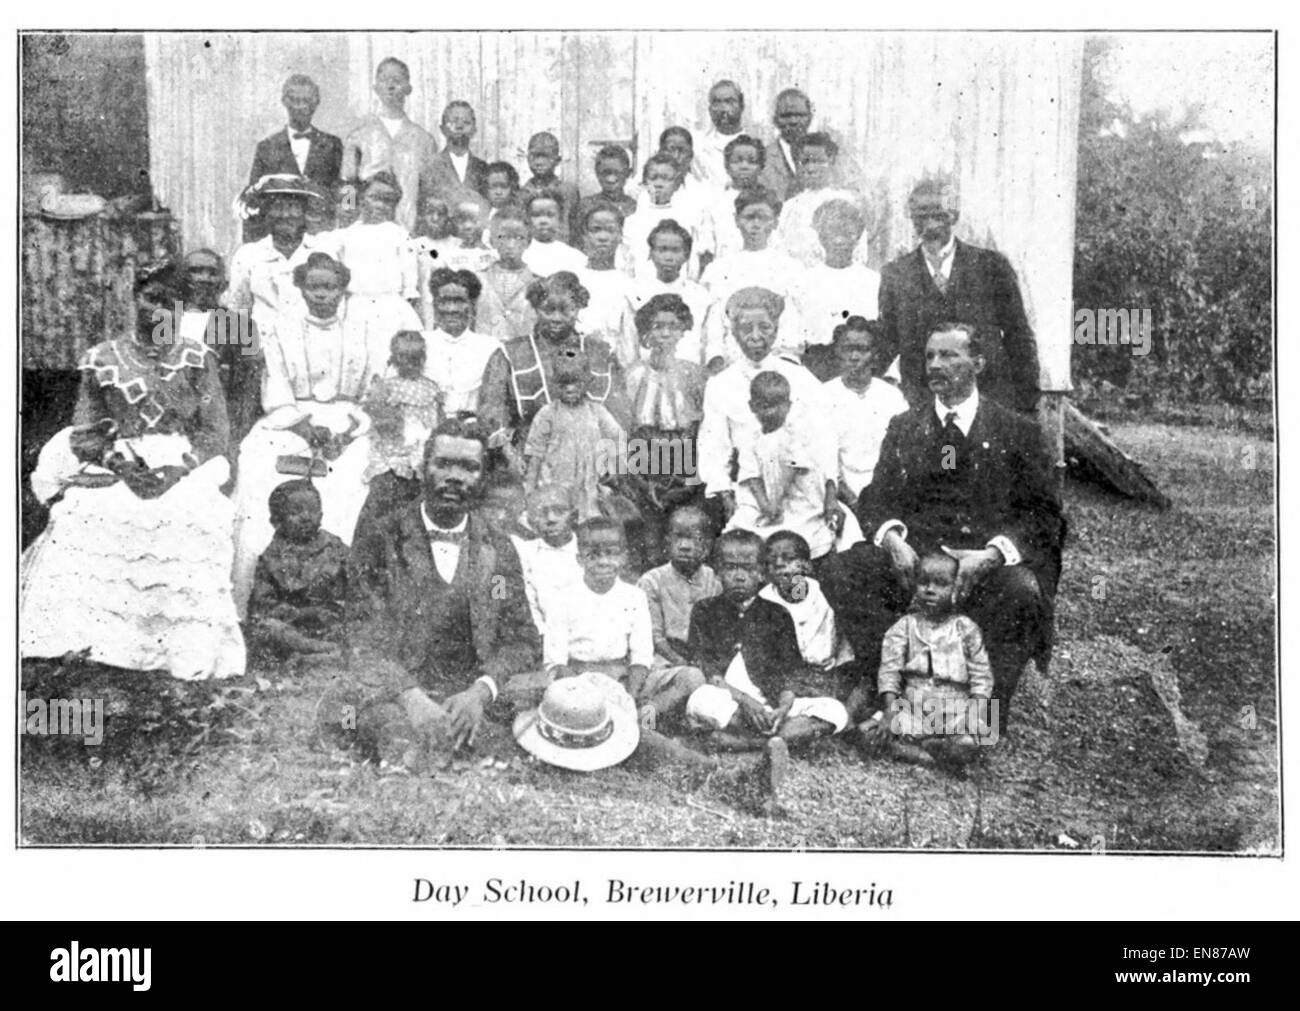 HEARD(1910) 09 - A.M.E. Day School at Brewersville, Liberia - Stock Image